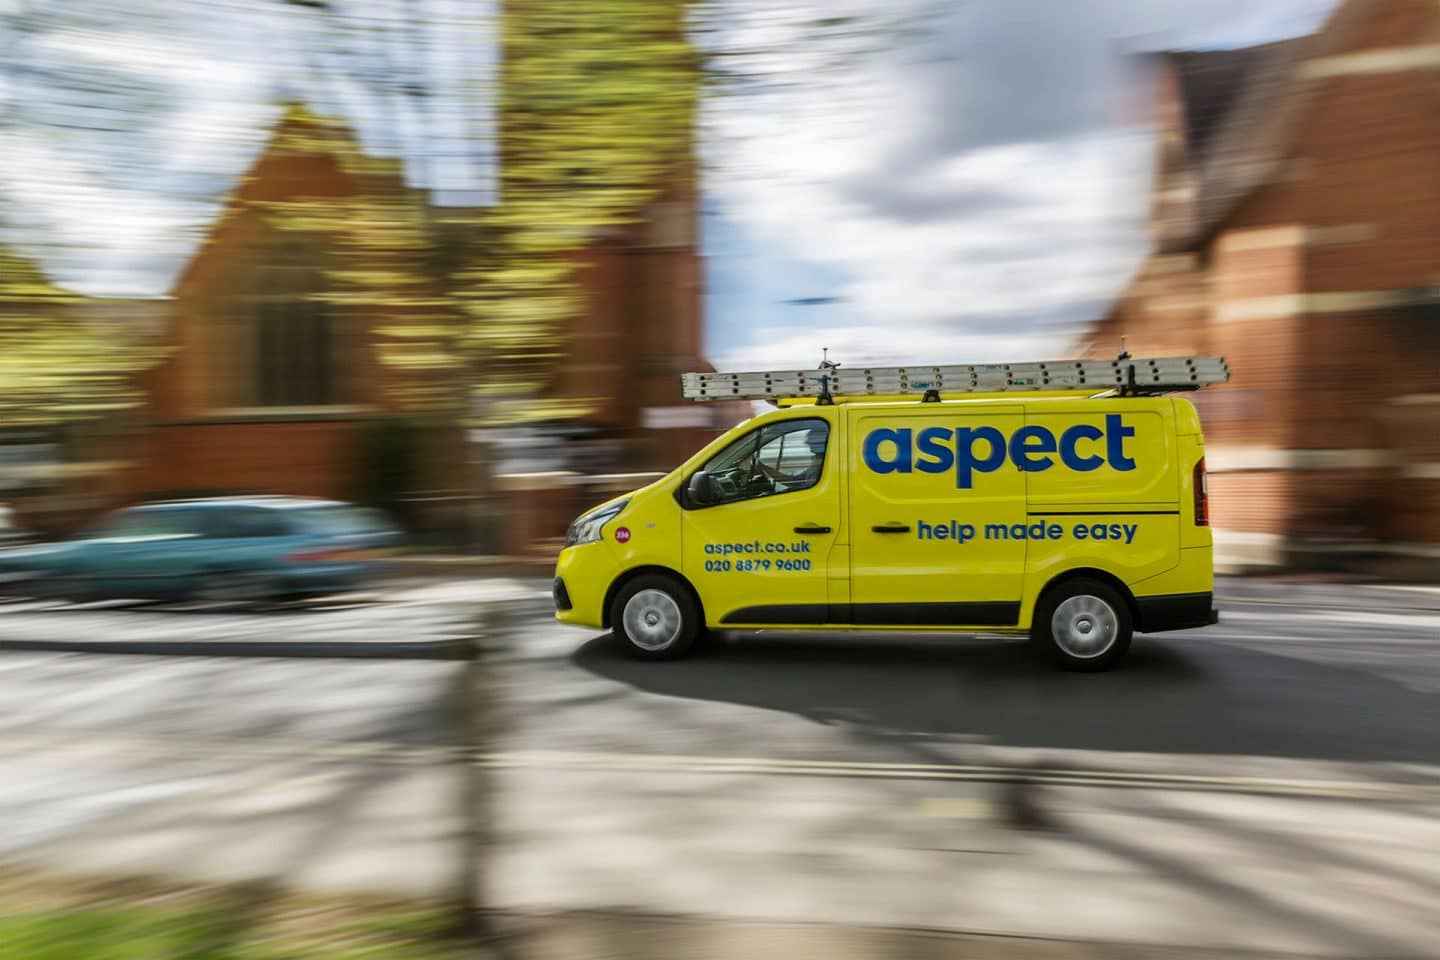 Aspect property maintenance in Westminster, Chelsea and Fulham